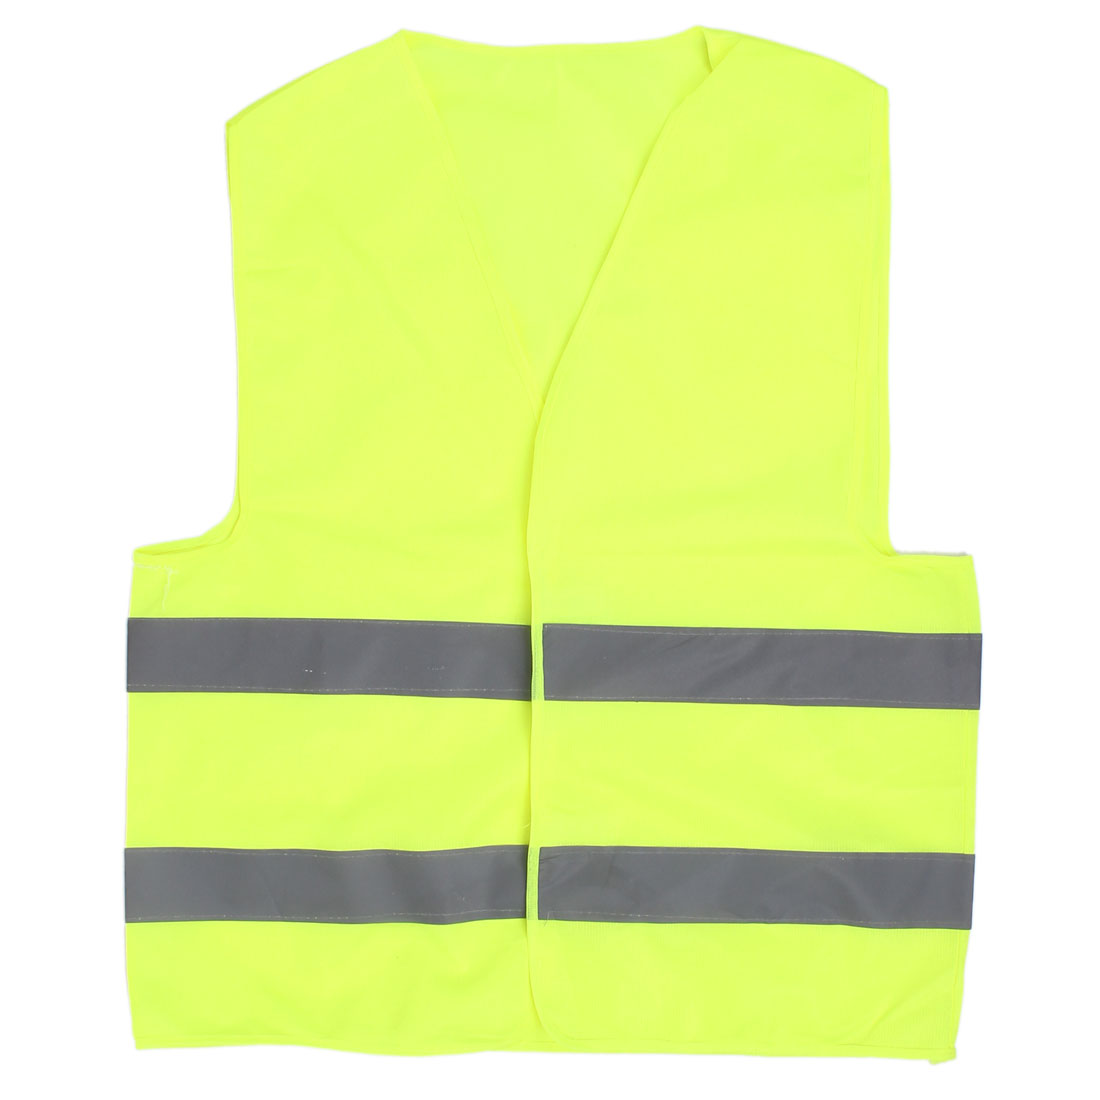 Reflective Traffic Safety Security Vest Yellow Green 66cm x 56cm